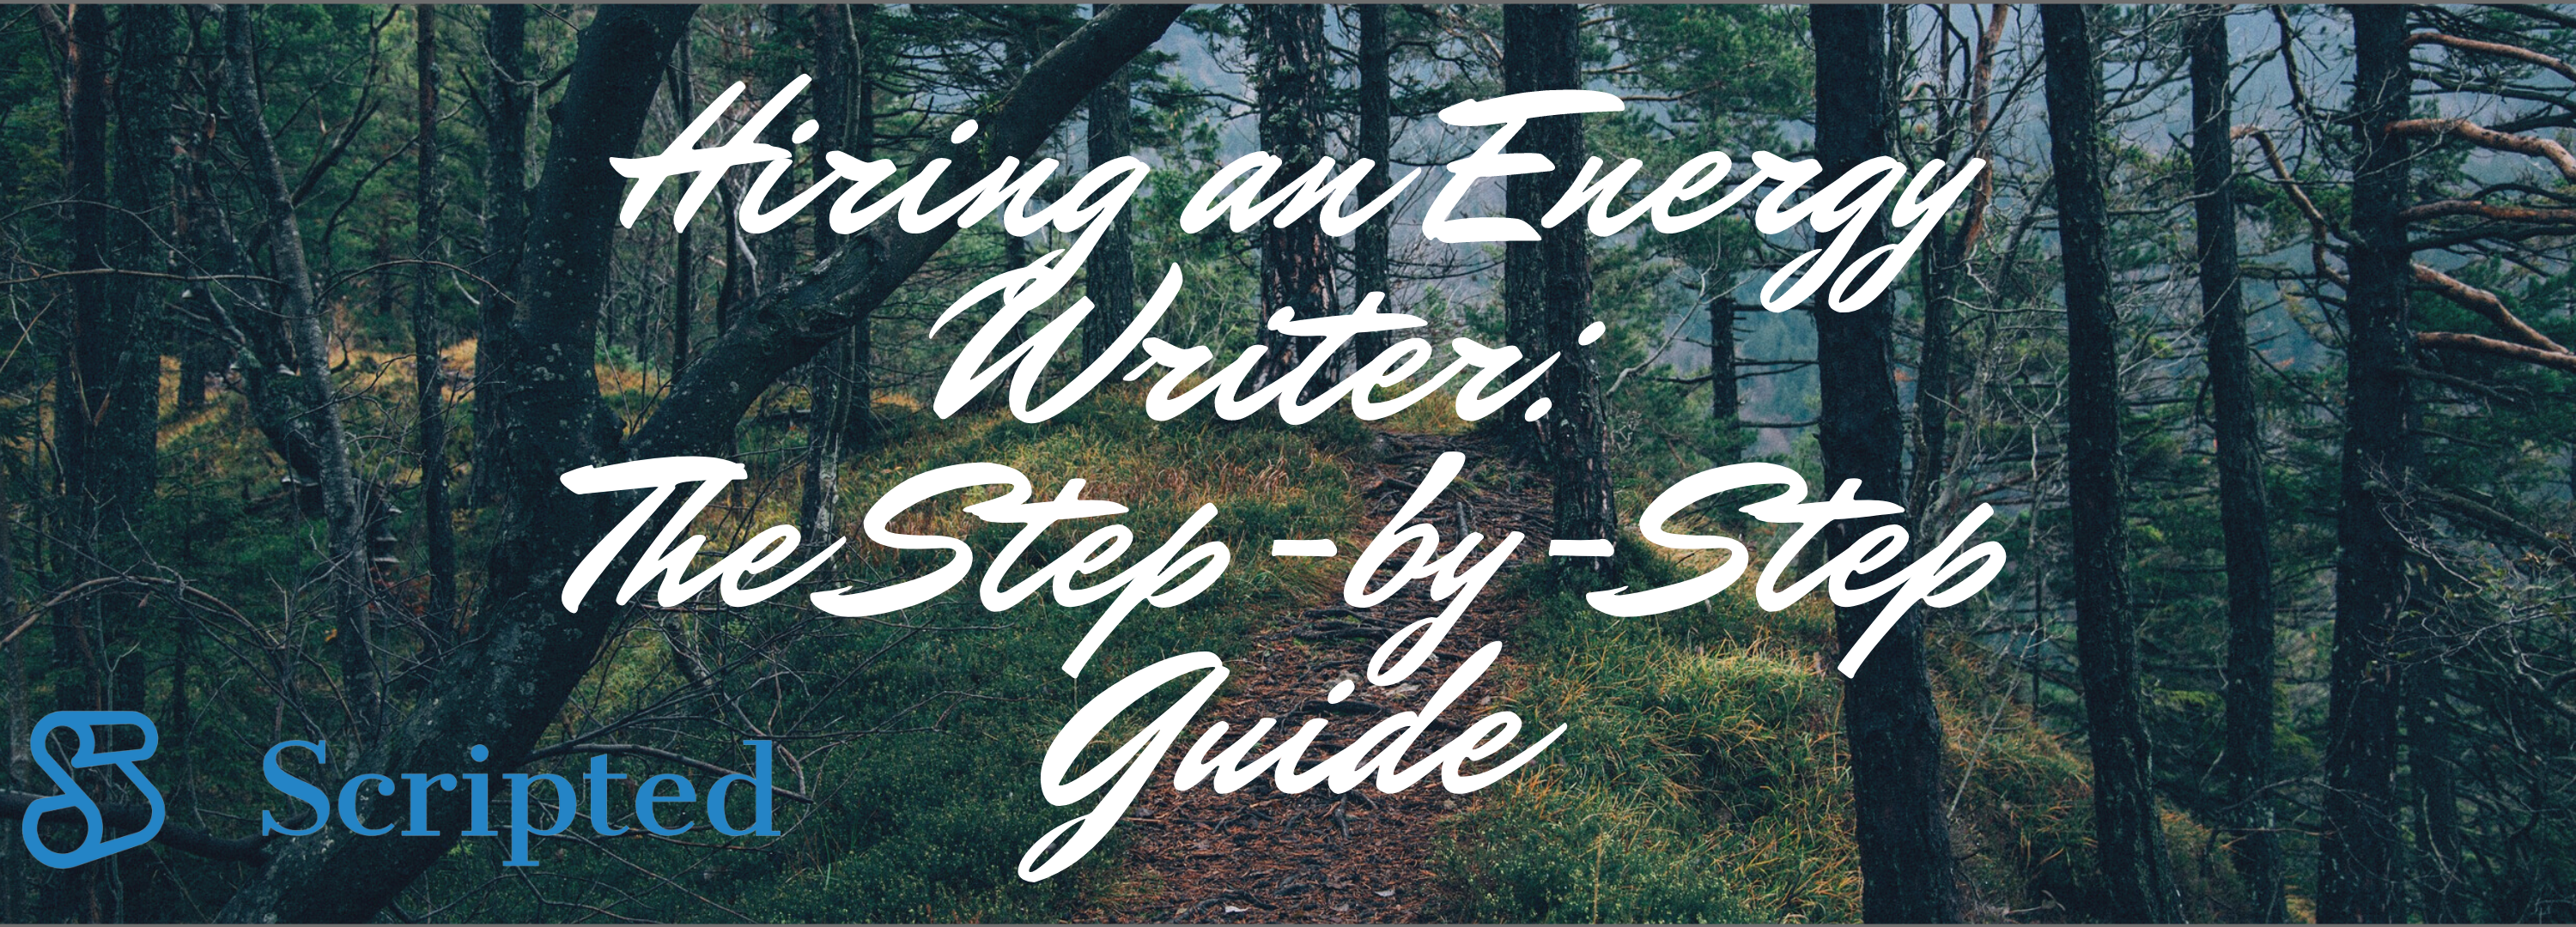 Hiring an Energy Writer: The Step-by-Step Guide